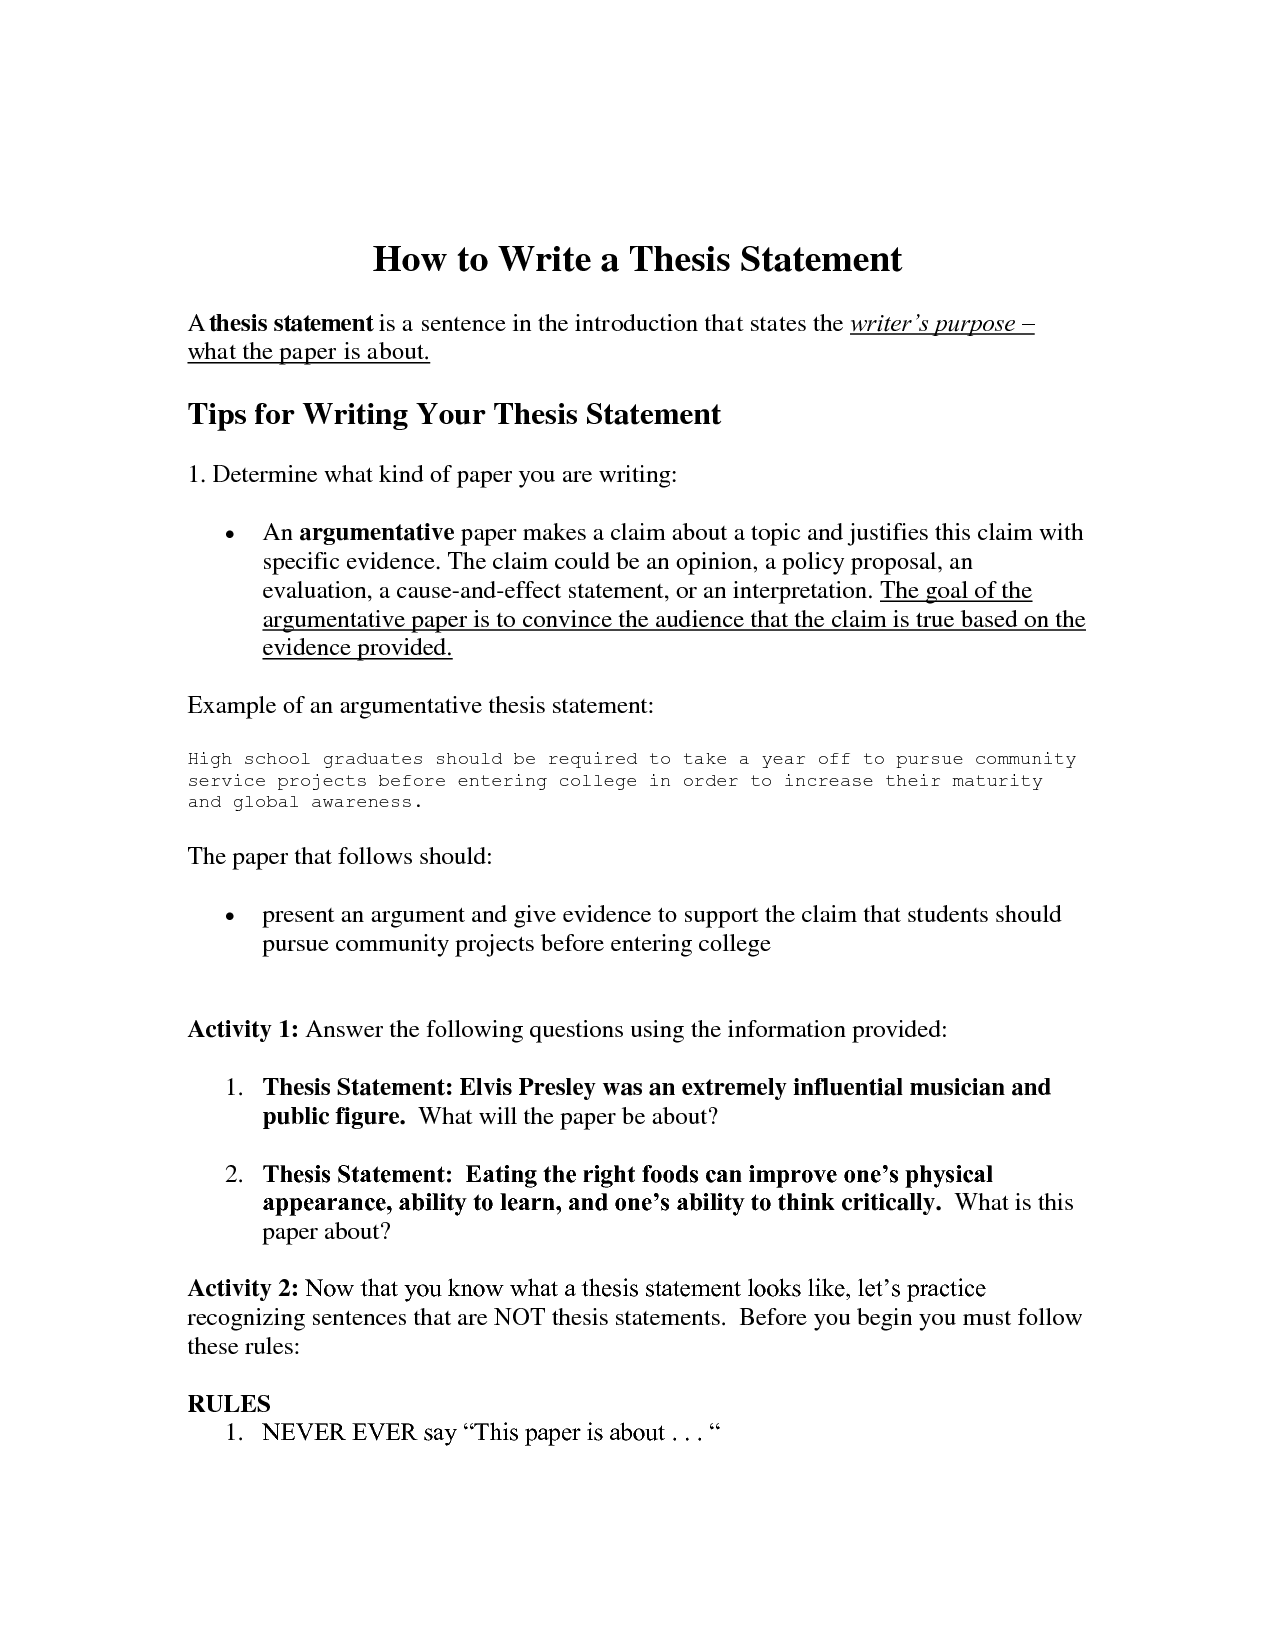 How To Use Free Essay Samples To Generate Your Own